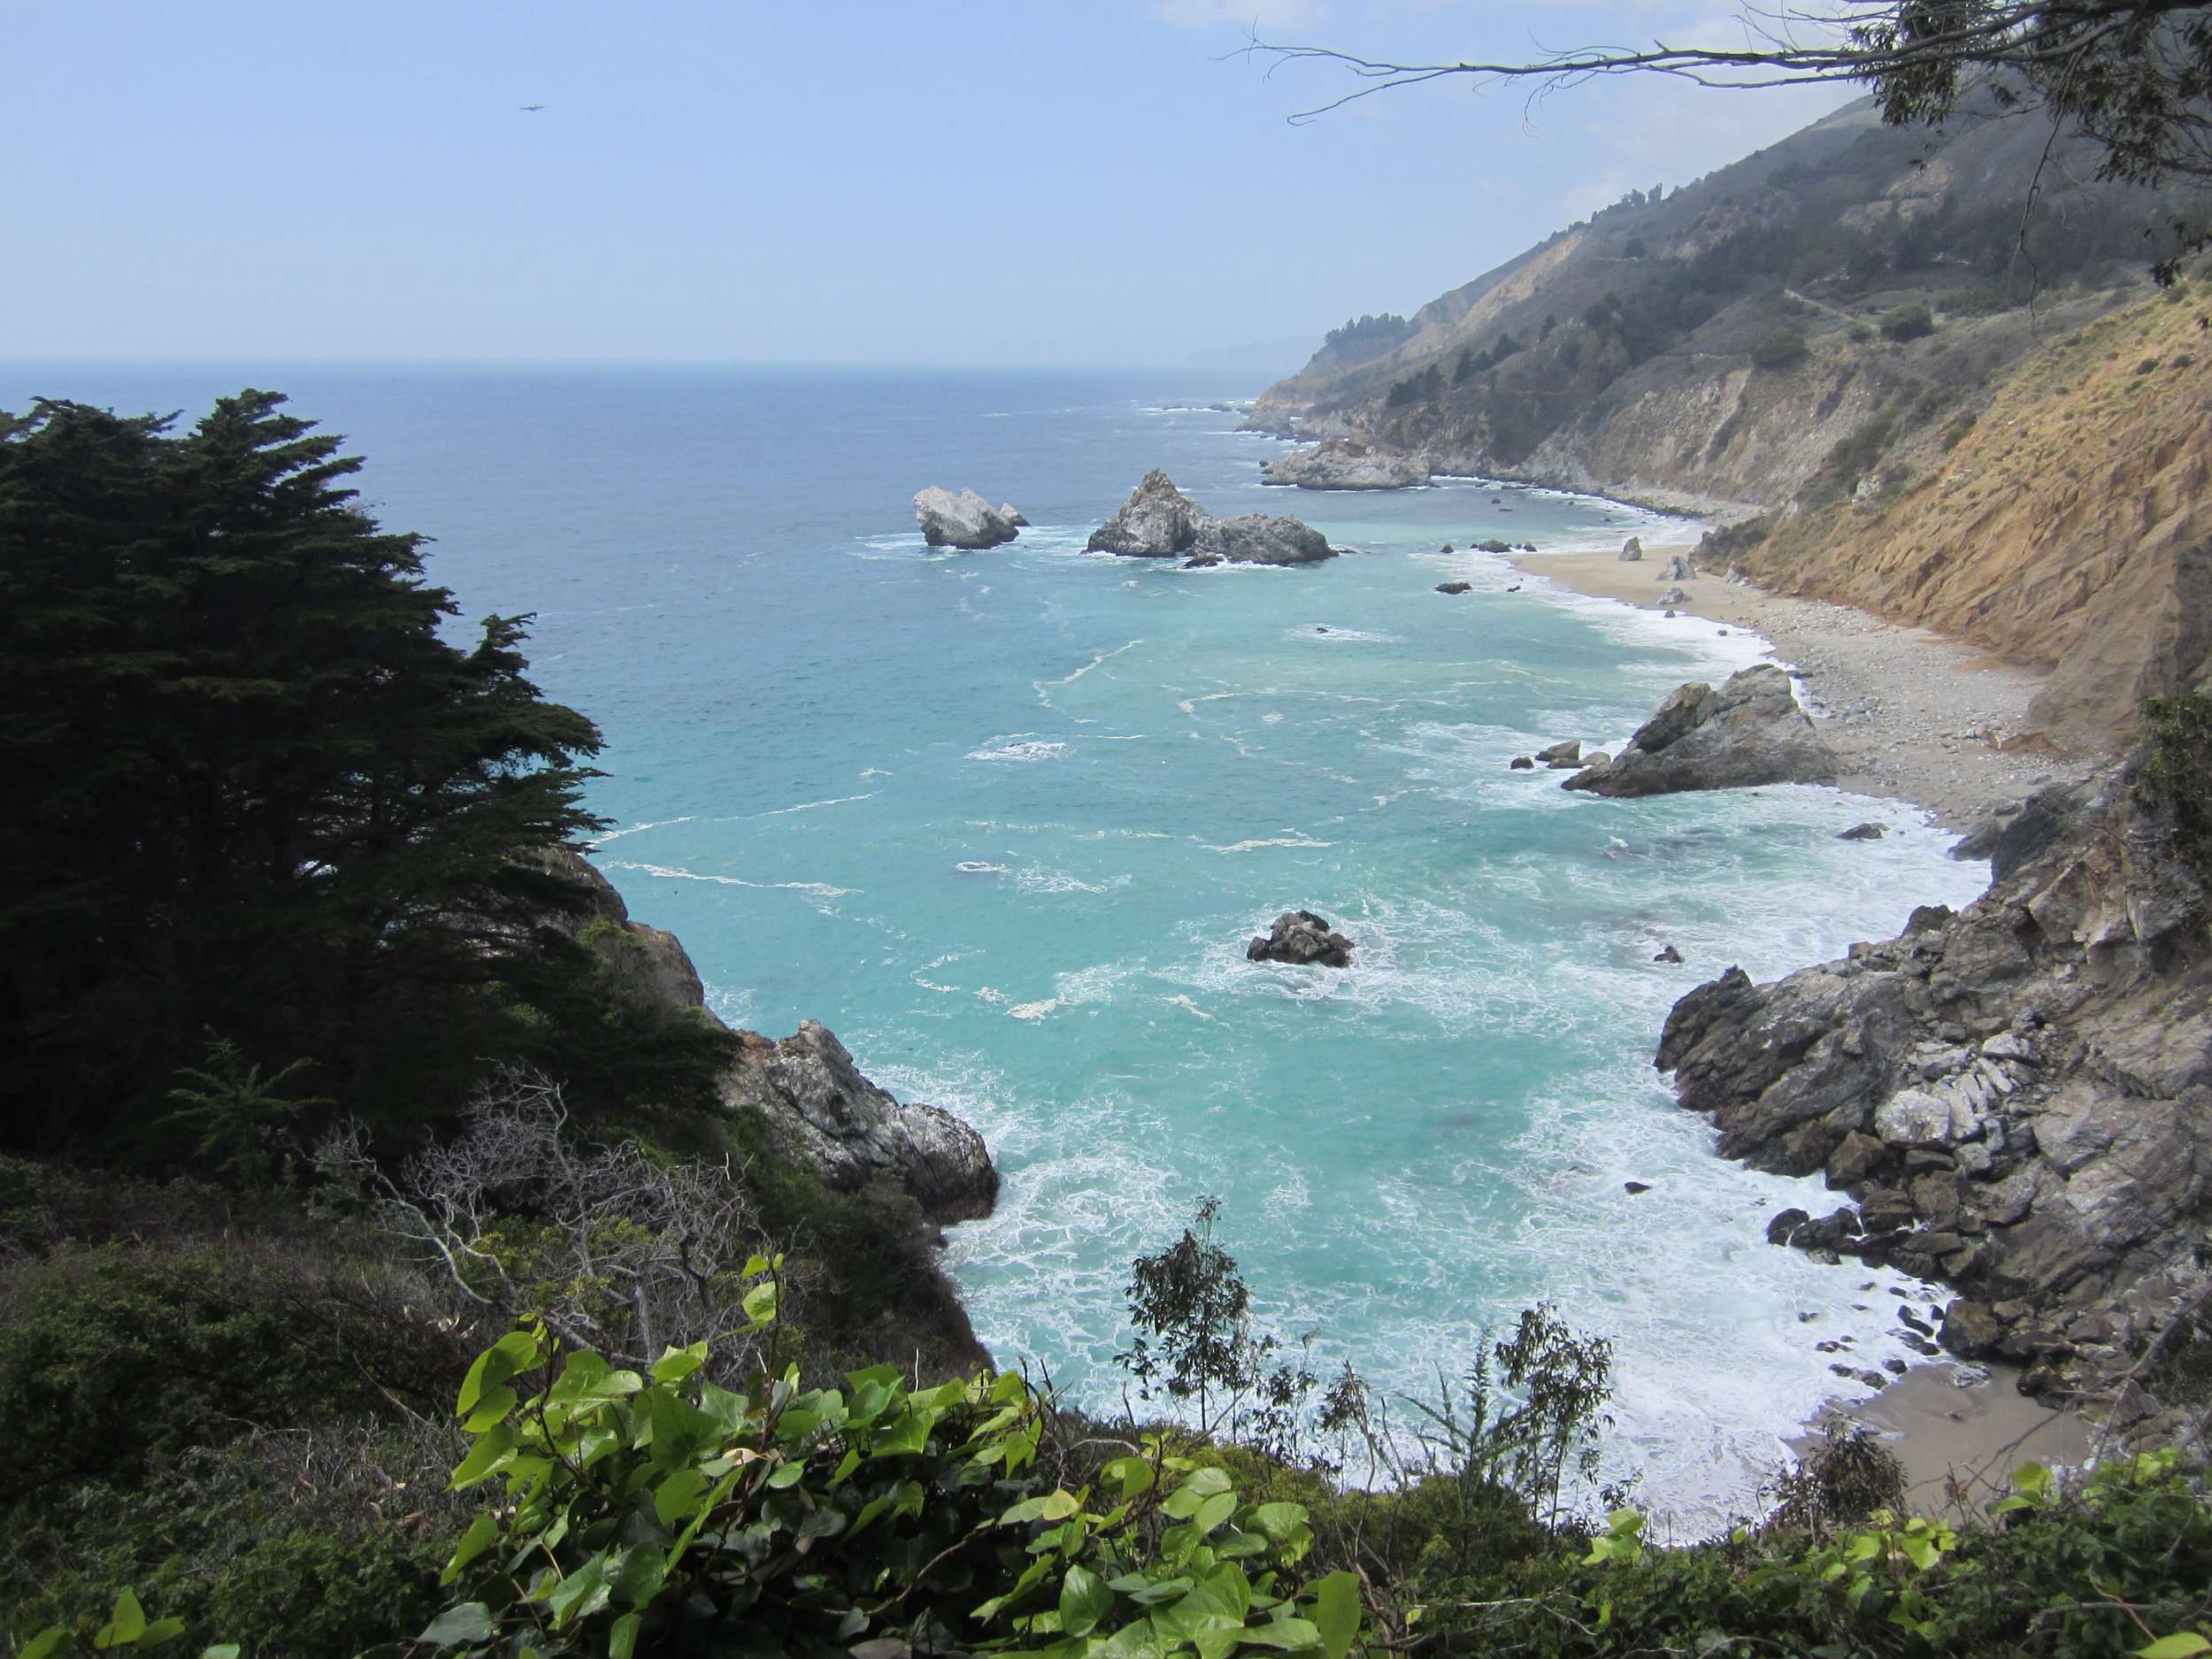 Coastline view at Julia Pfeiffer Burns State Park